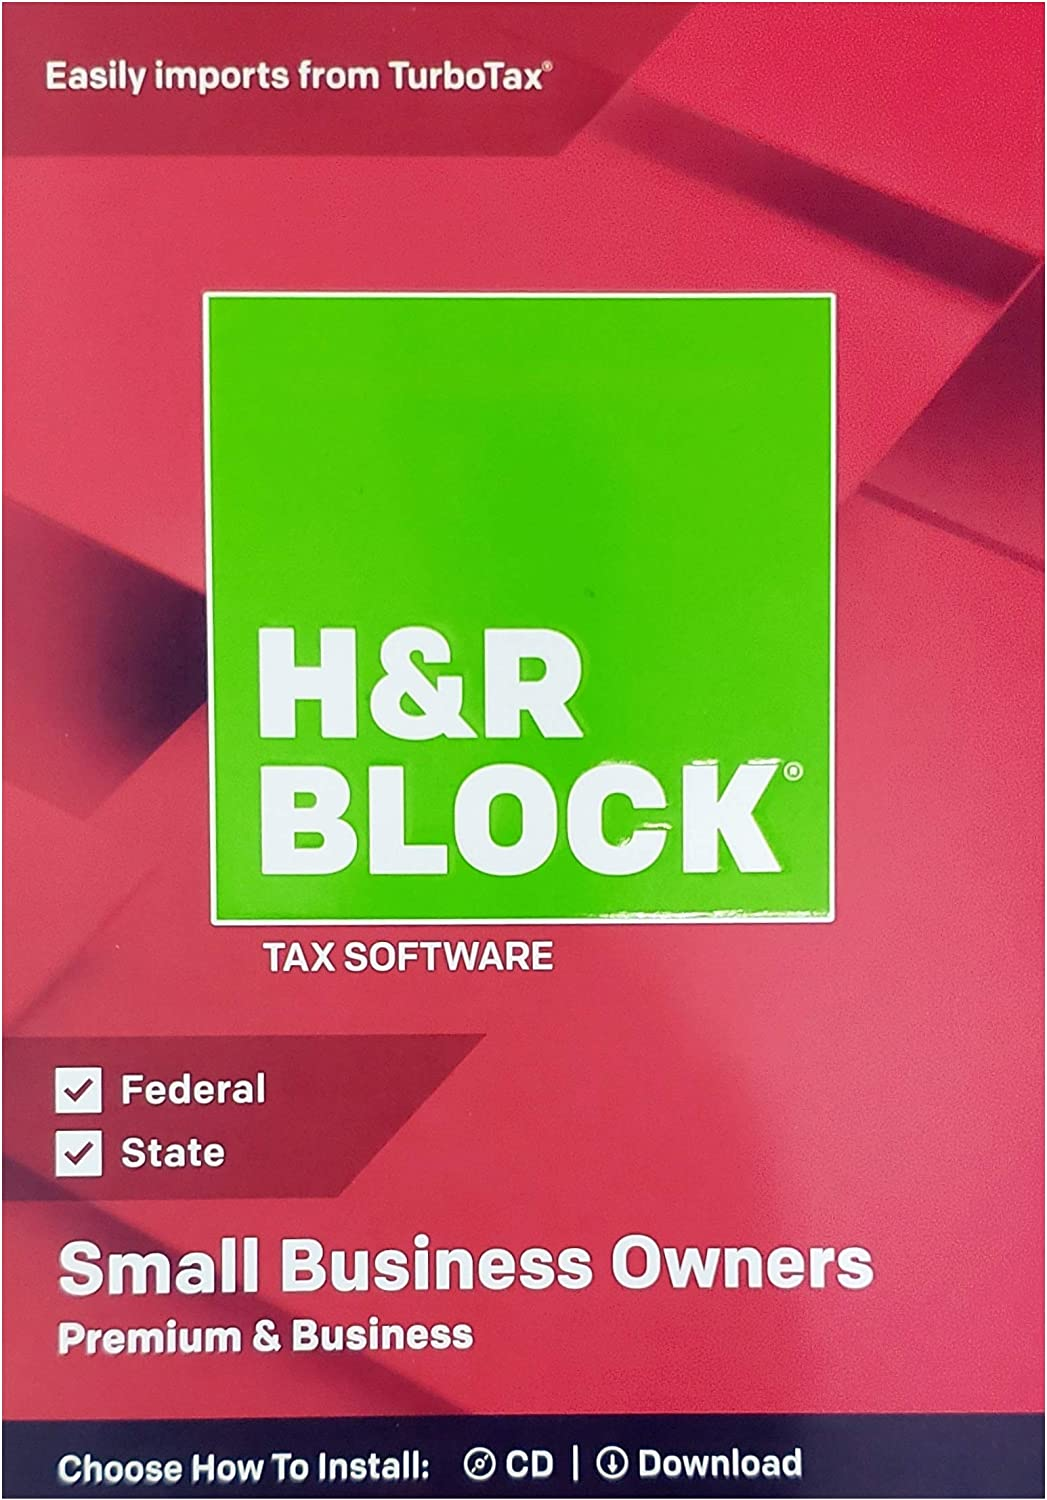 H&R Block Premium & Business 2018 Federal + State Tax Software for Small Business Owners (Windows Vista, 7, 8.1, 10) 81vITojO8eL